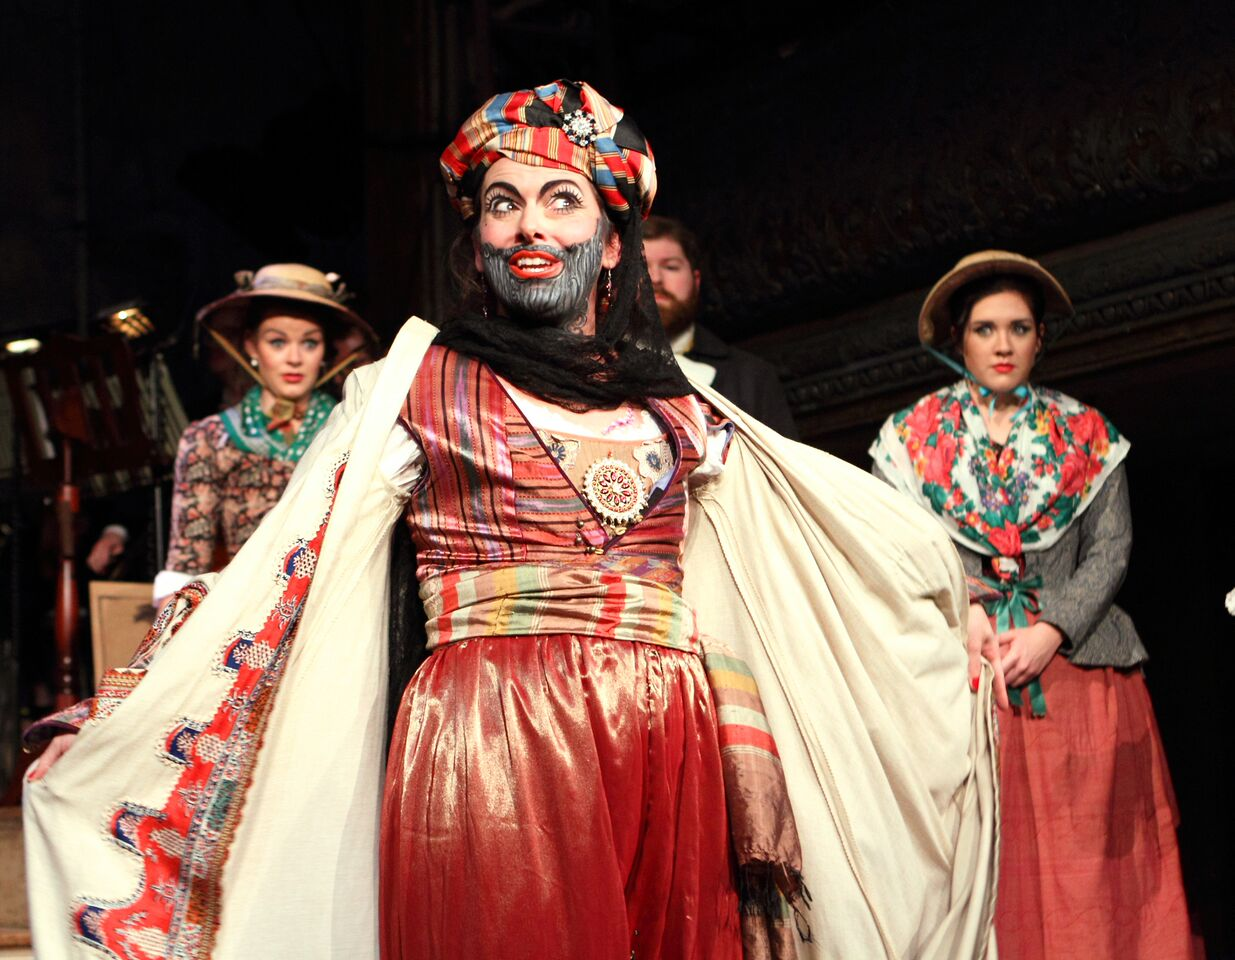 Victoria Simmonds as Baba the Turk